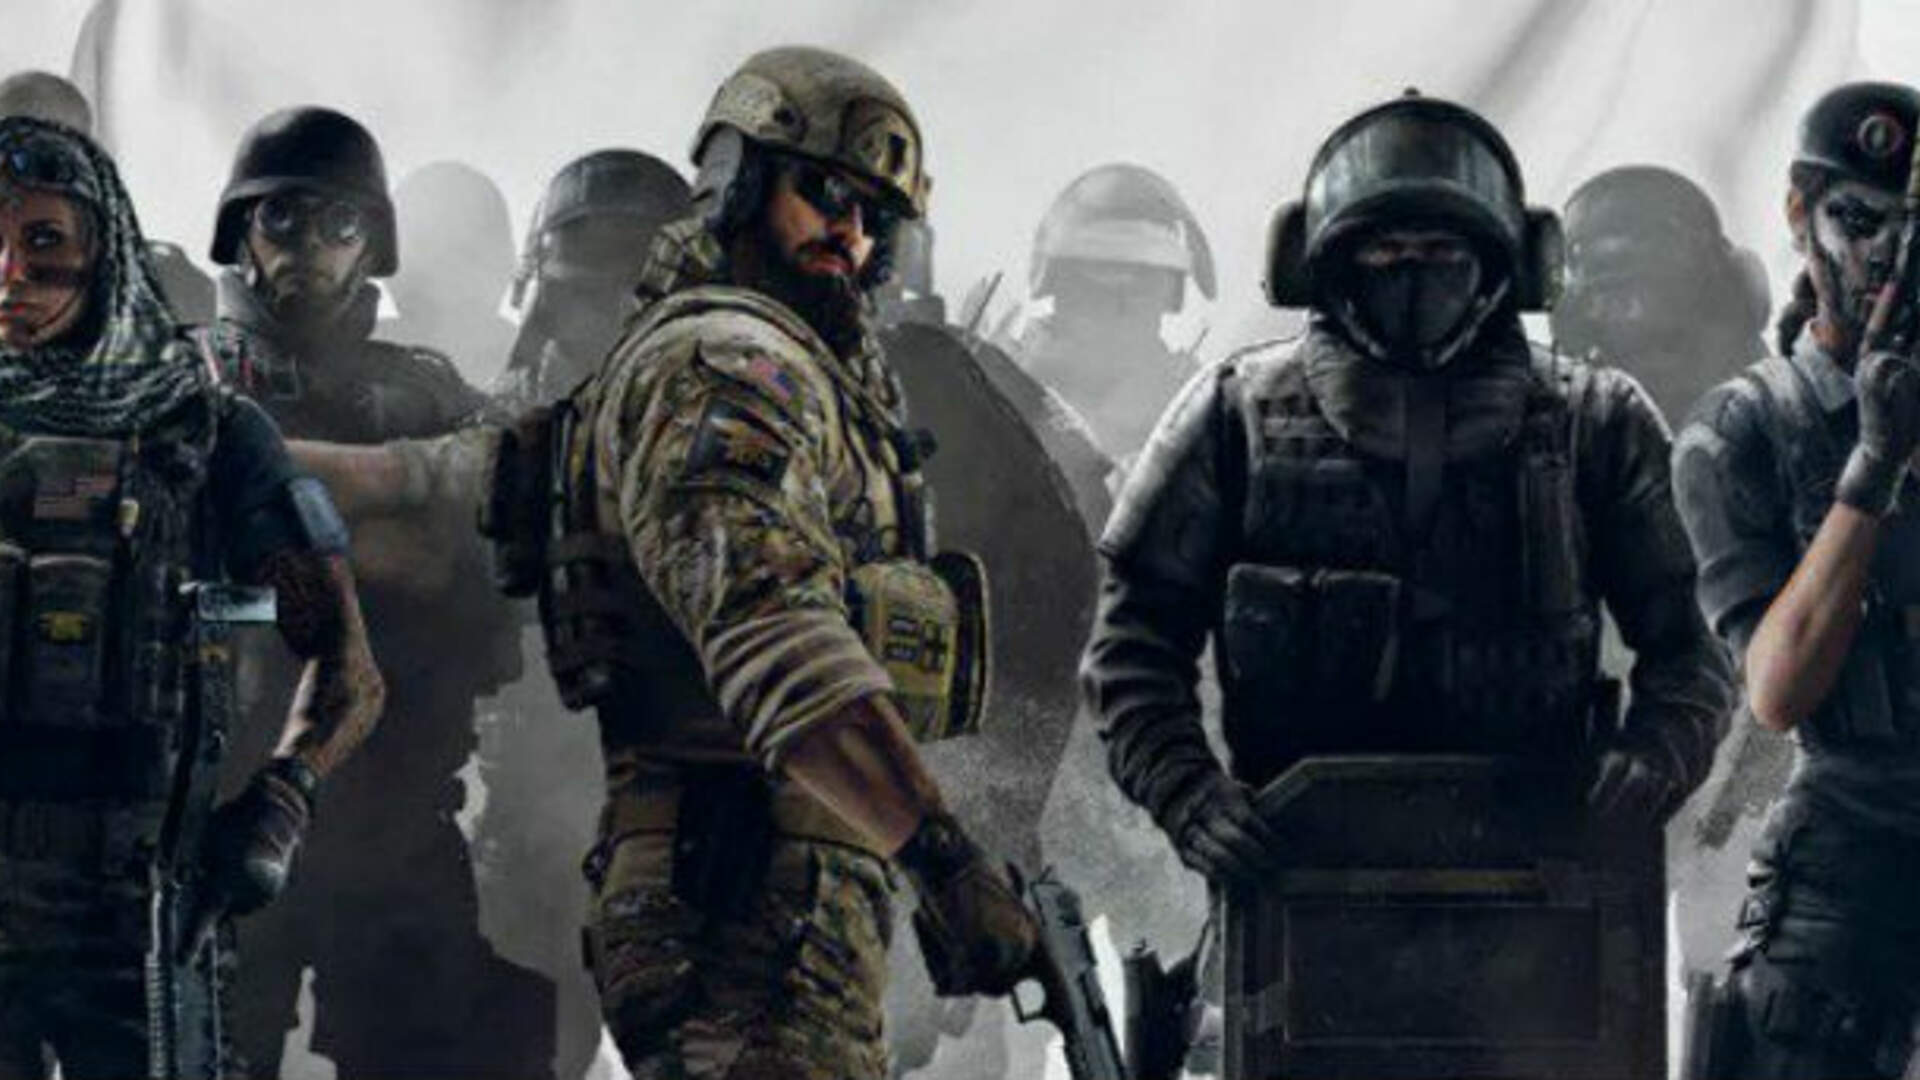 Rainbow Six Siege is Getting Xbox One X and PlayStation 4 Pro Support in the Future